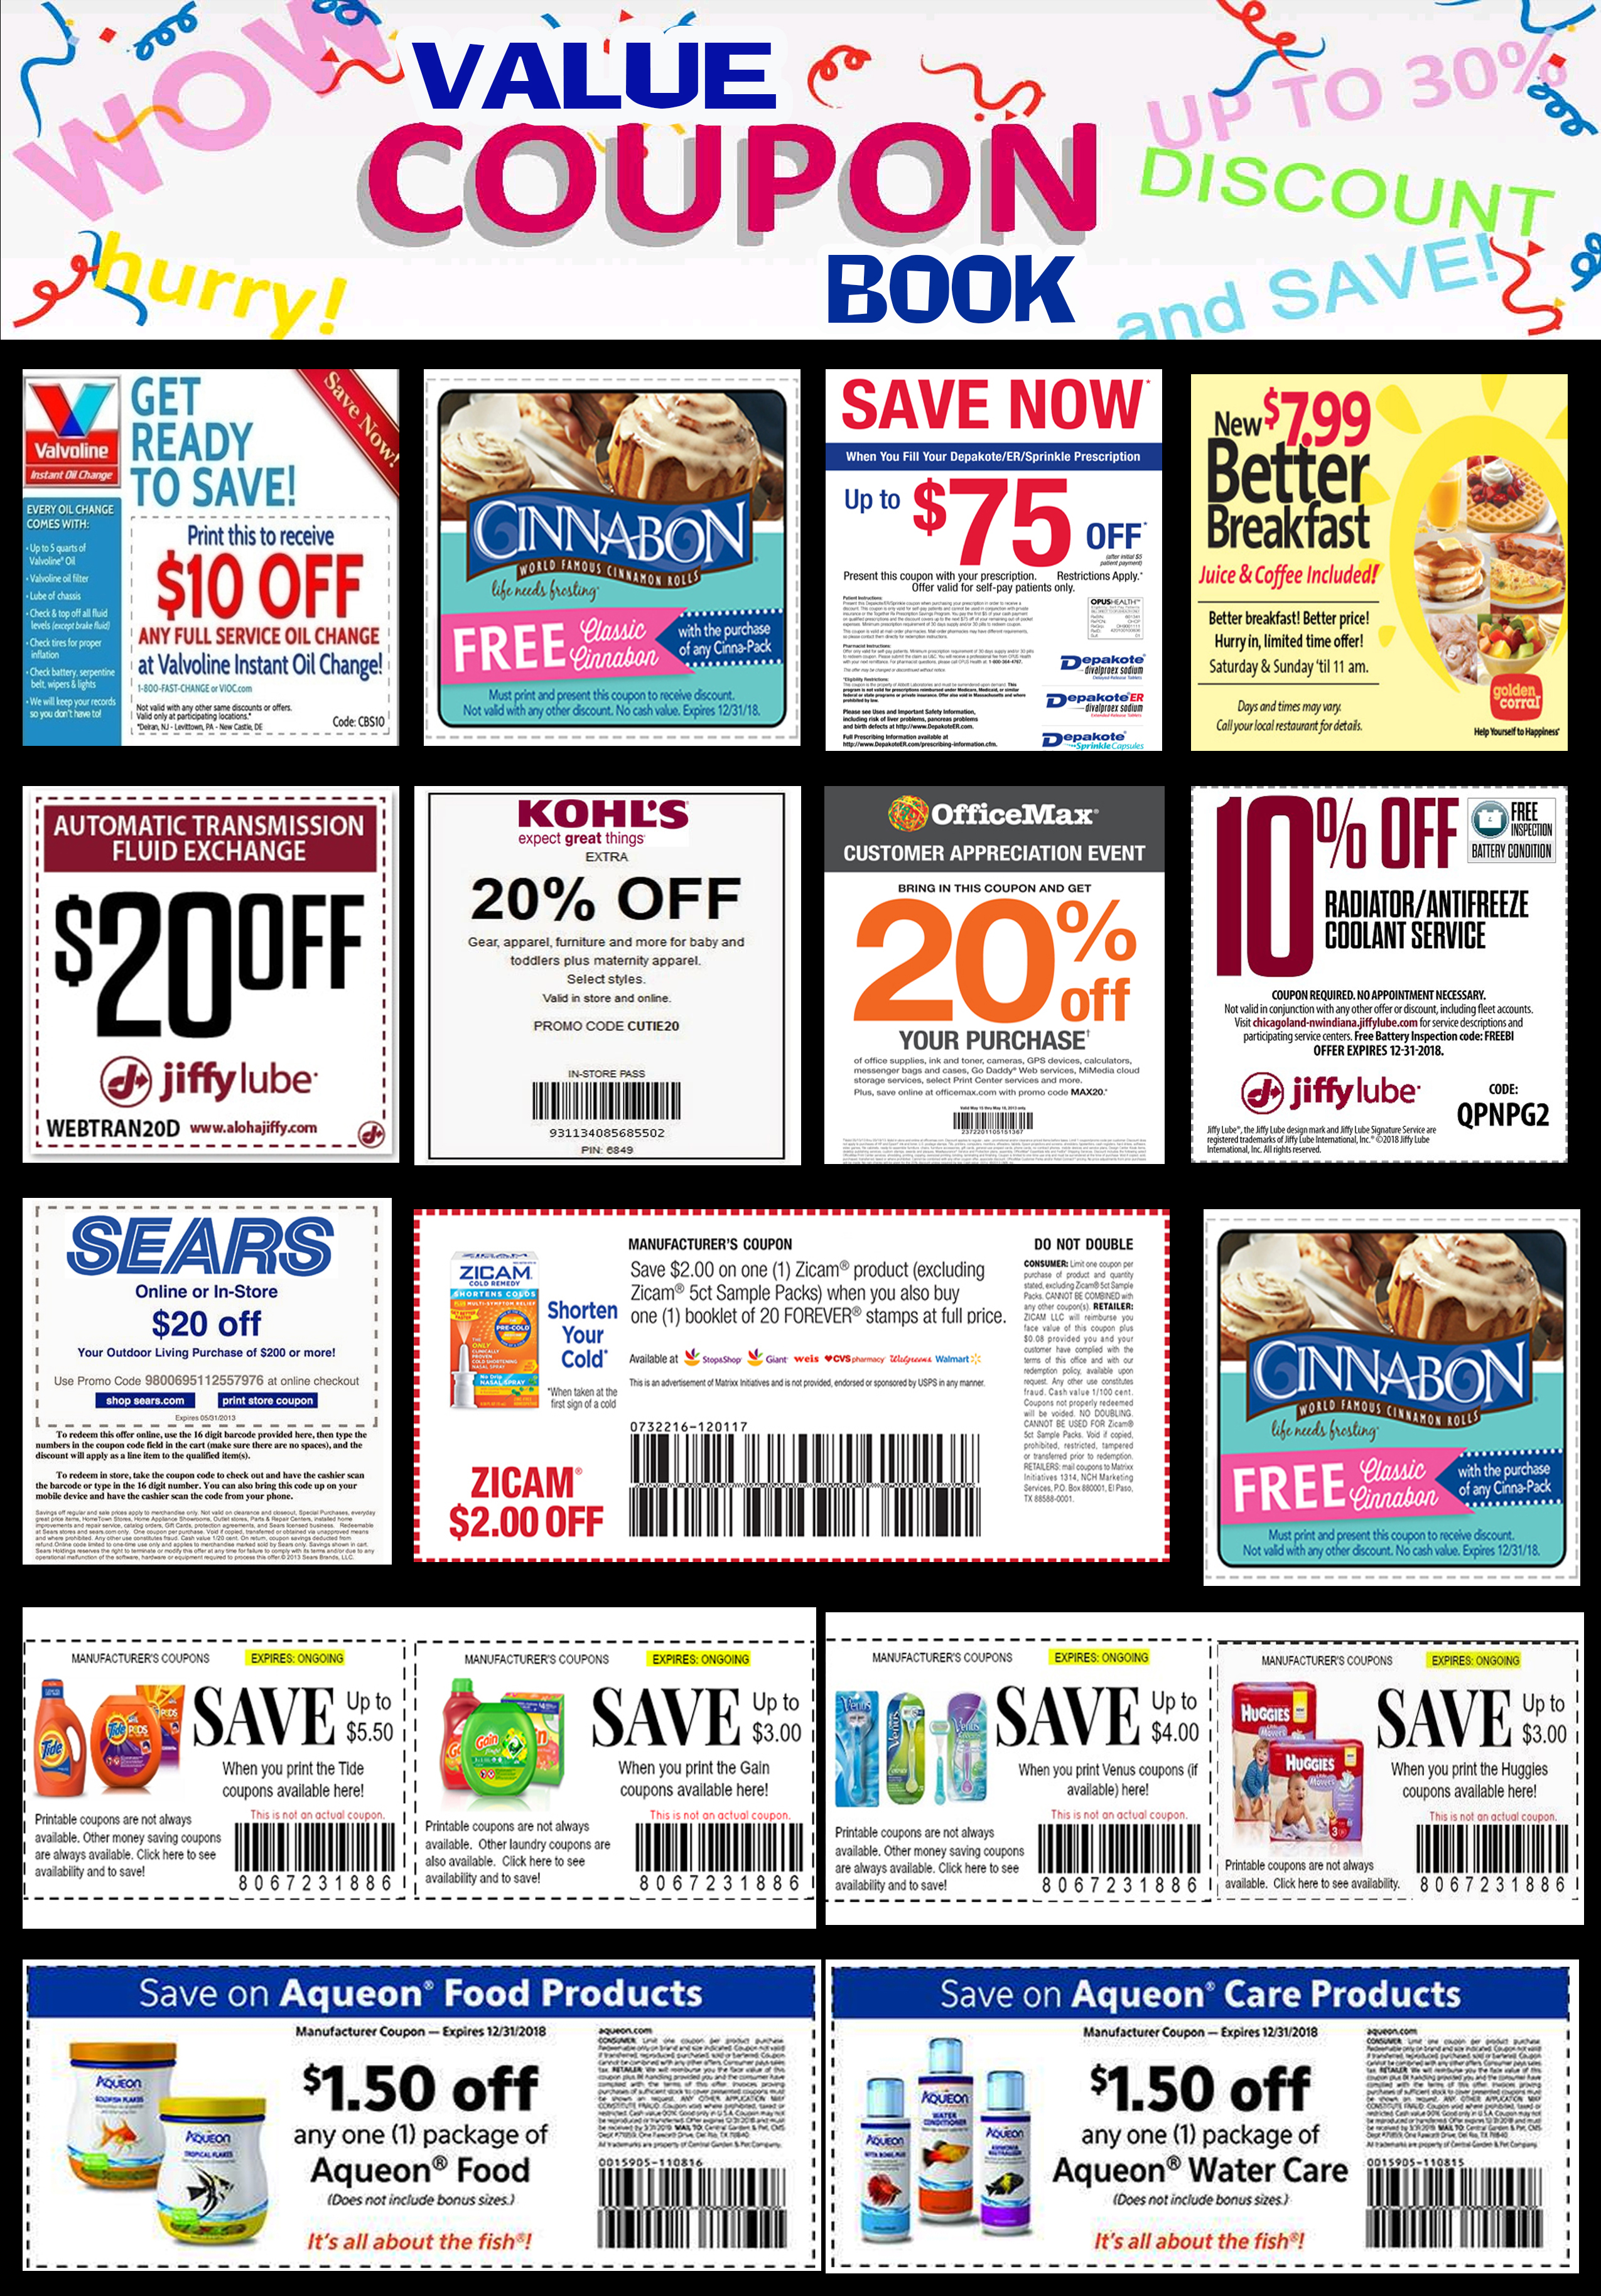 Advertise your Coupons to millions of customers